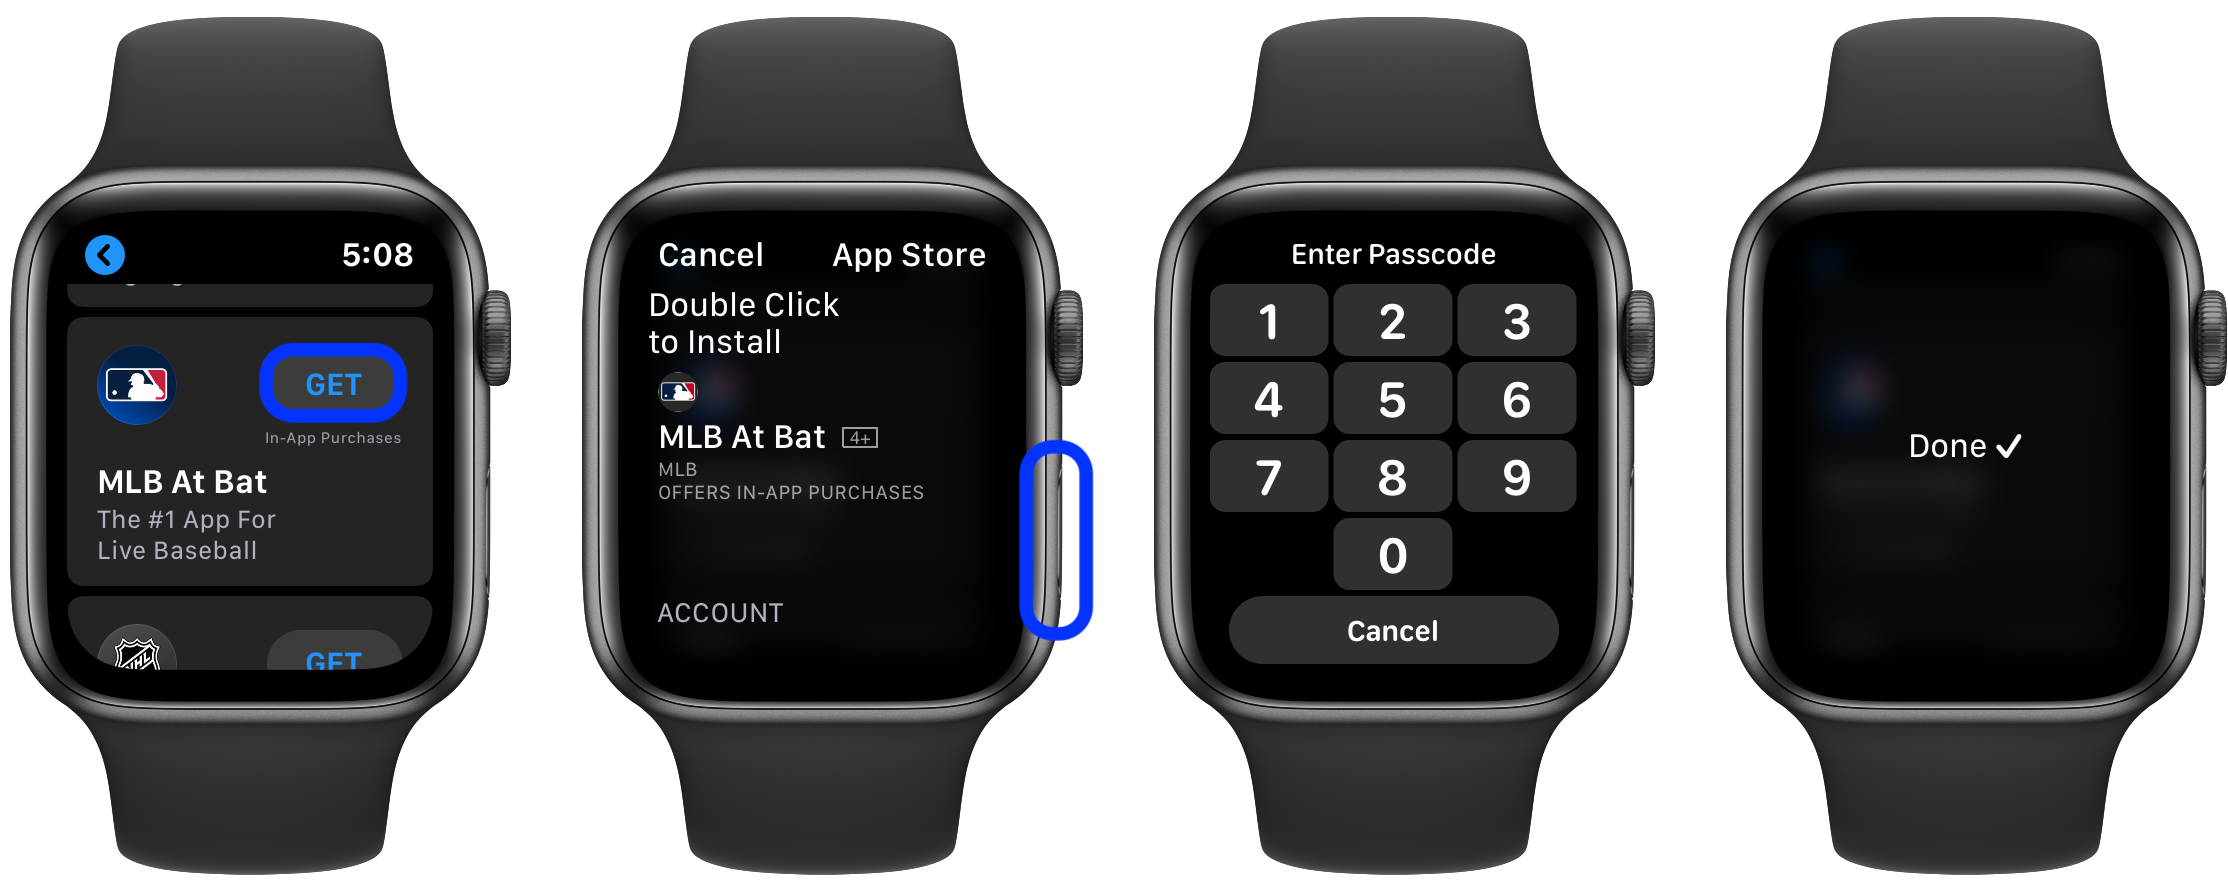 How to download apps directly on Apple Watch walkthrough 2